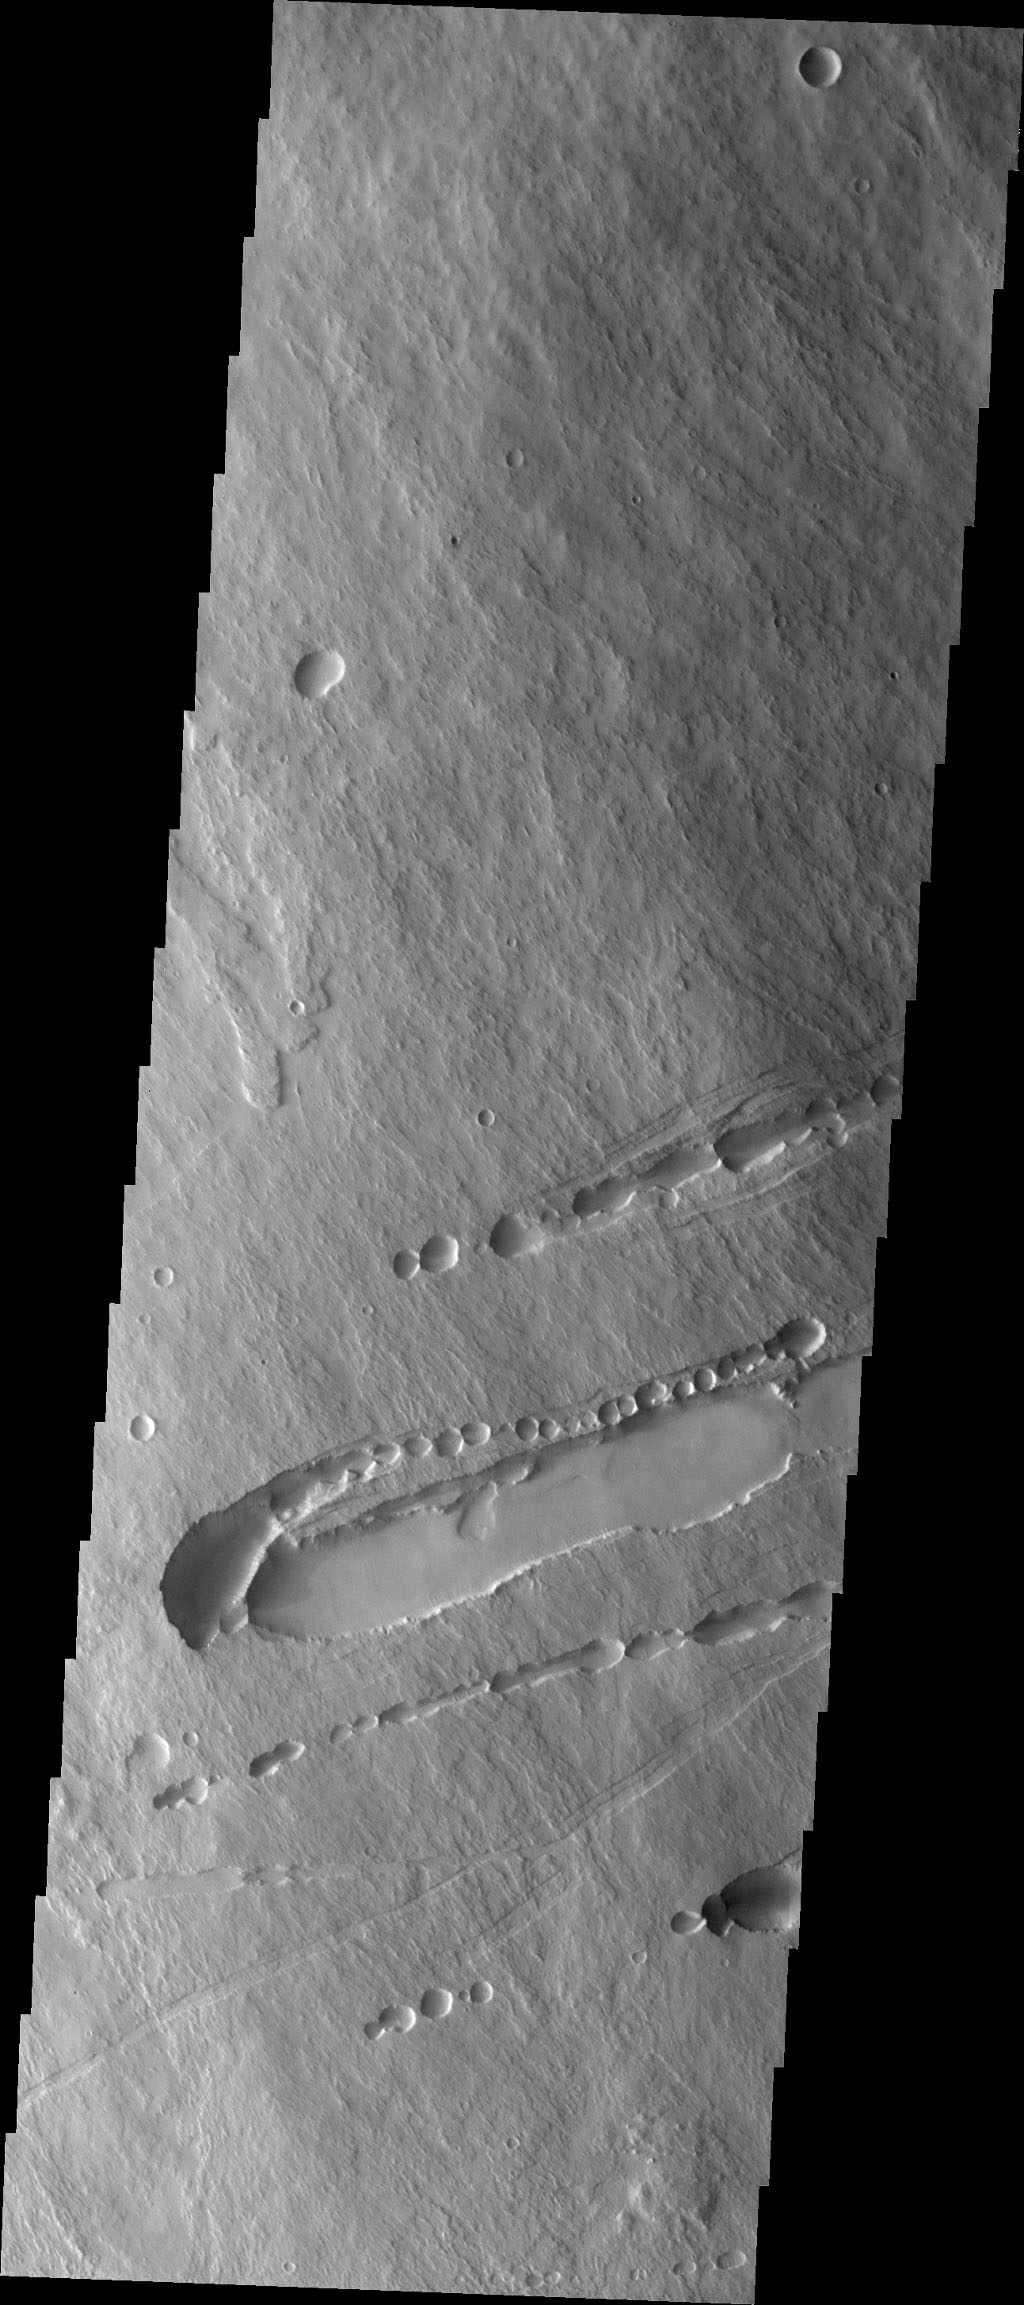 This image from NASA's 2001 Mars Odyssey spacecraft shows part of the southeastern flank of Pavonis Mons. Surface lava flows run down hill from the top left of the image to the bottom right.